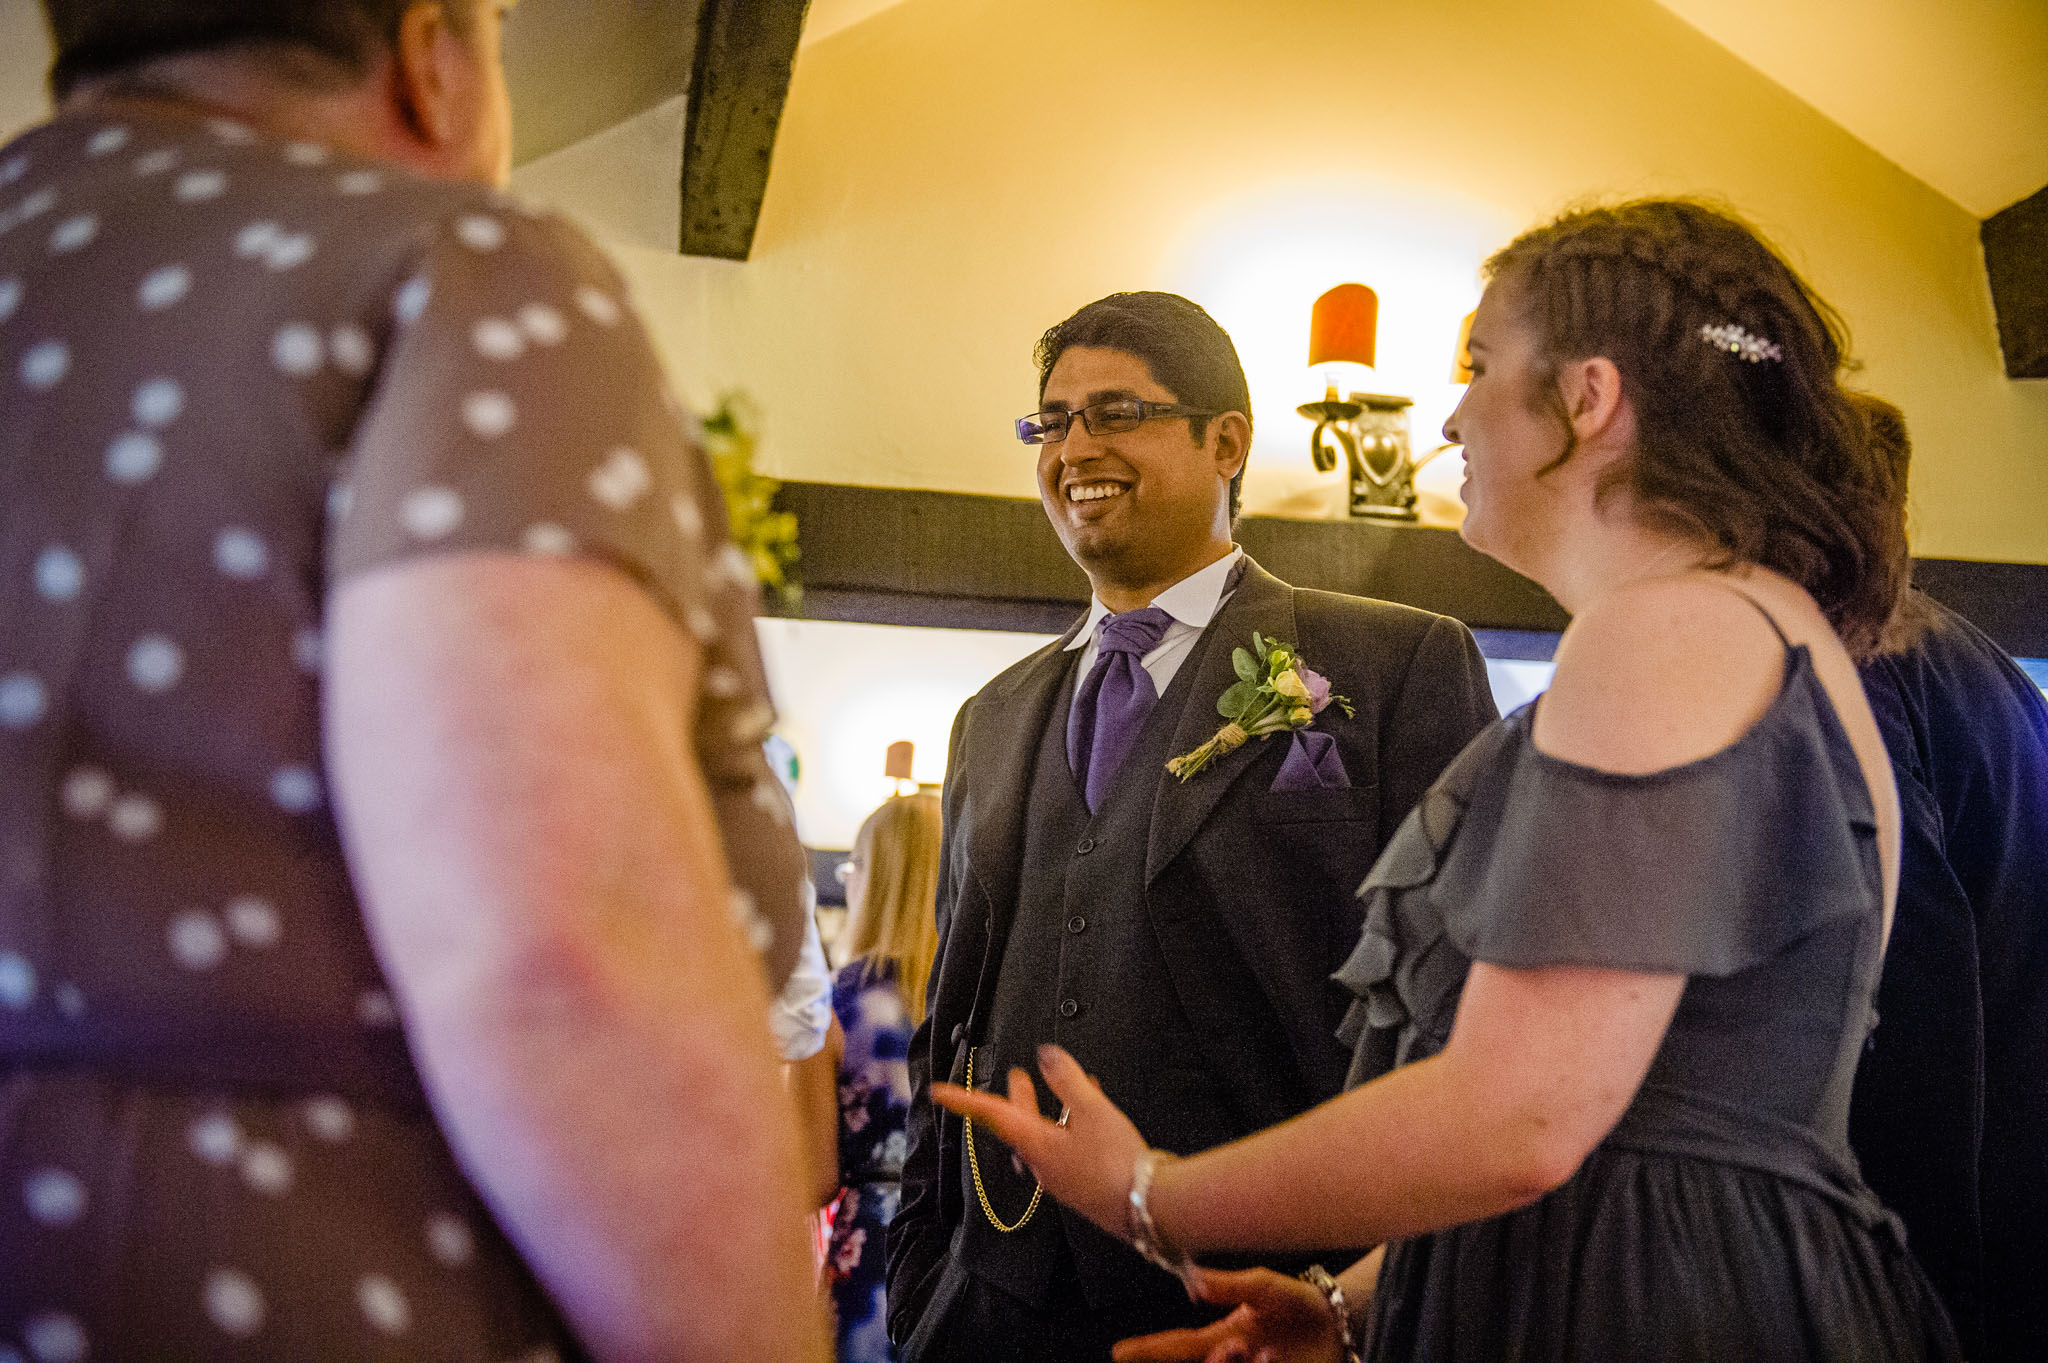 The groom chats with guests before the wedding begins